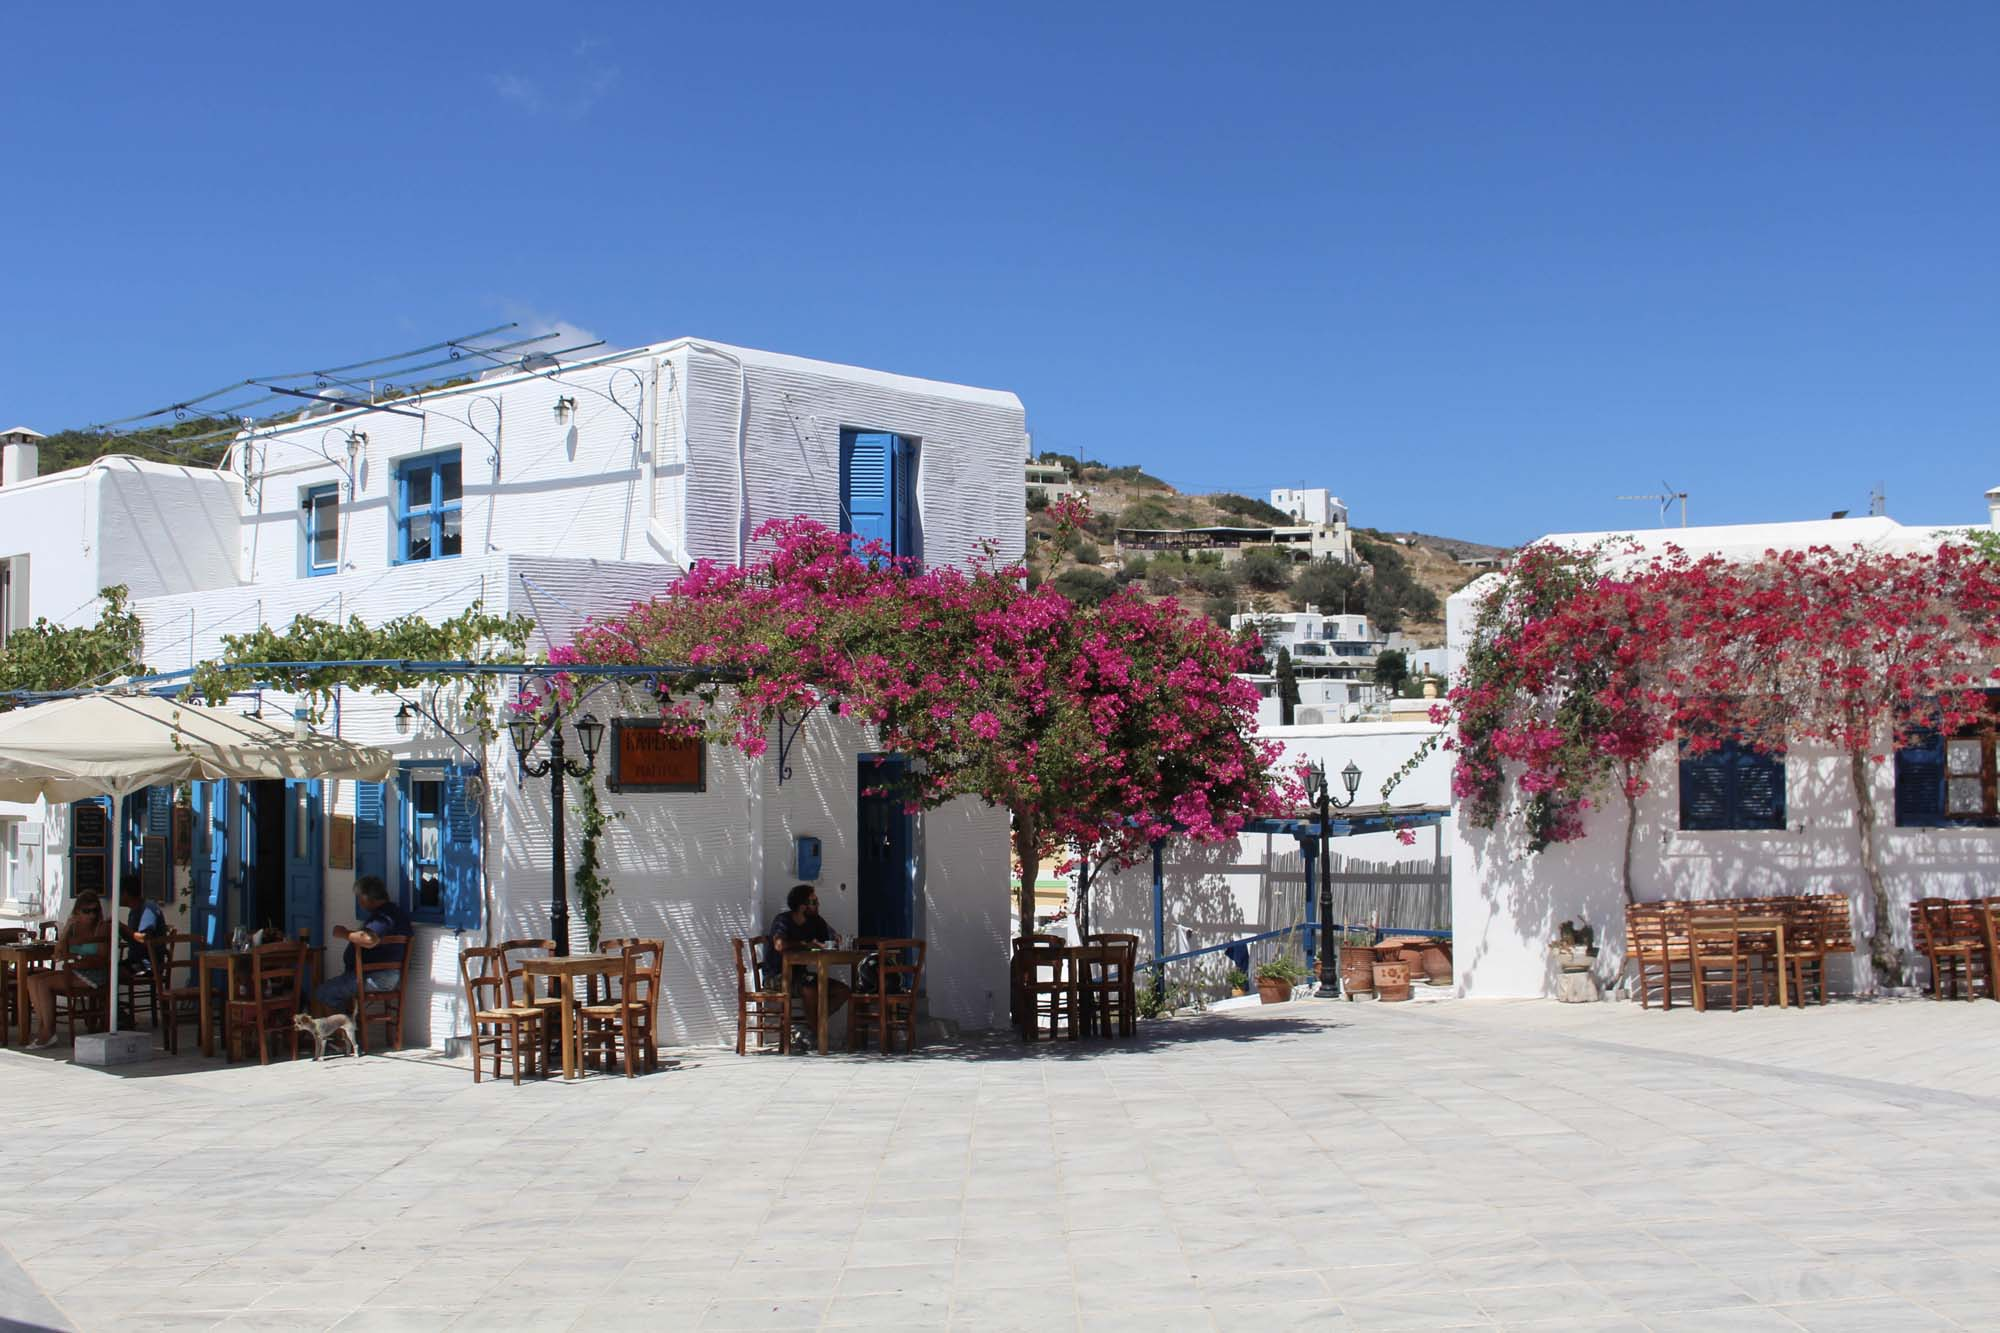 greece-paros-travel-linstantflo-13-sur-35